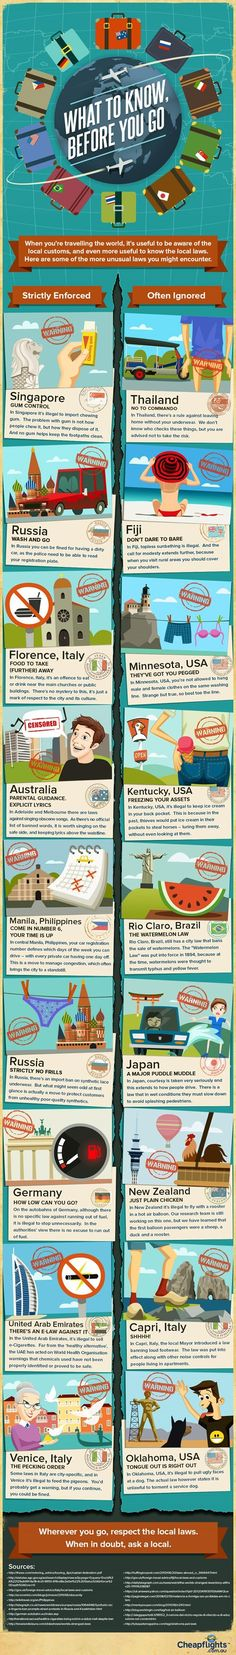 18 Strange Laws From Around the World http://chzb.gr/18KZu1g While some weird laws can often be ignored, like going commando in Thailand, others like chewing gum in Singapore will land you in hot water!